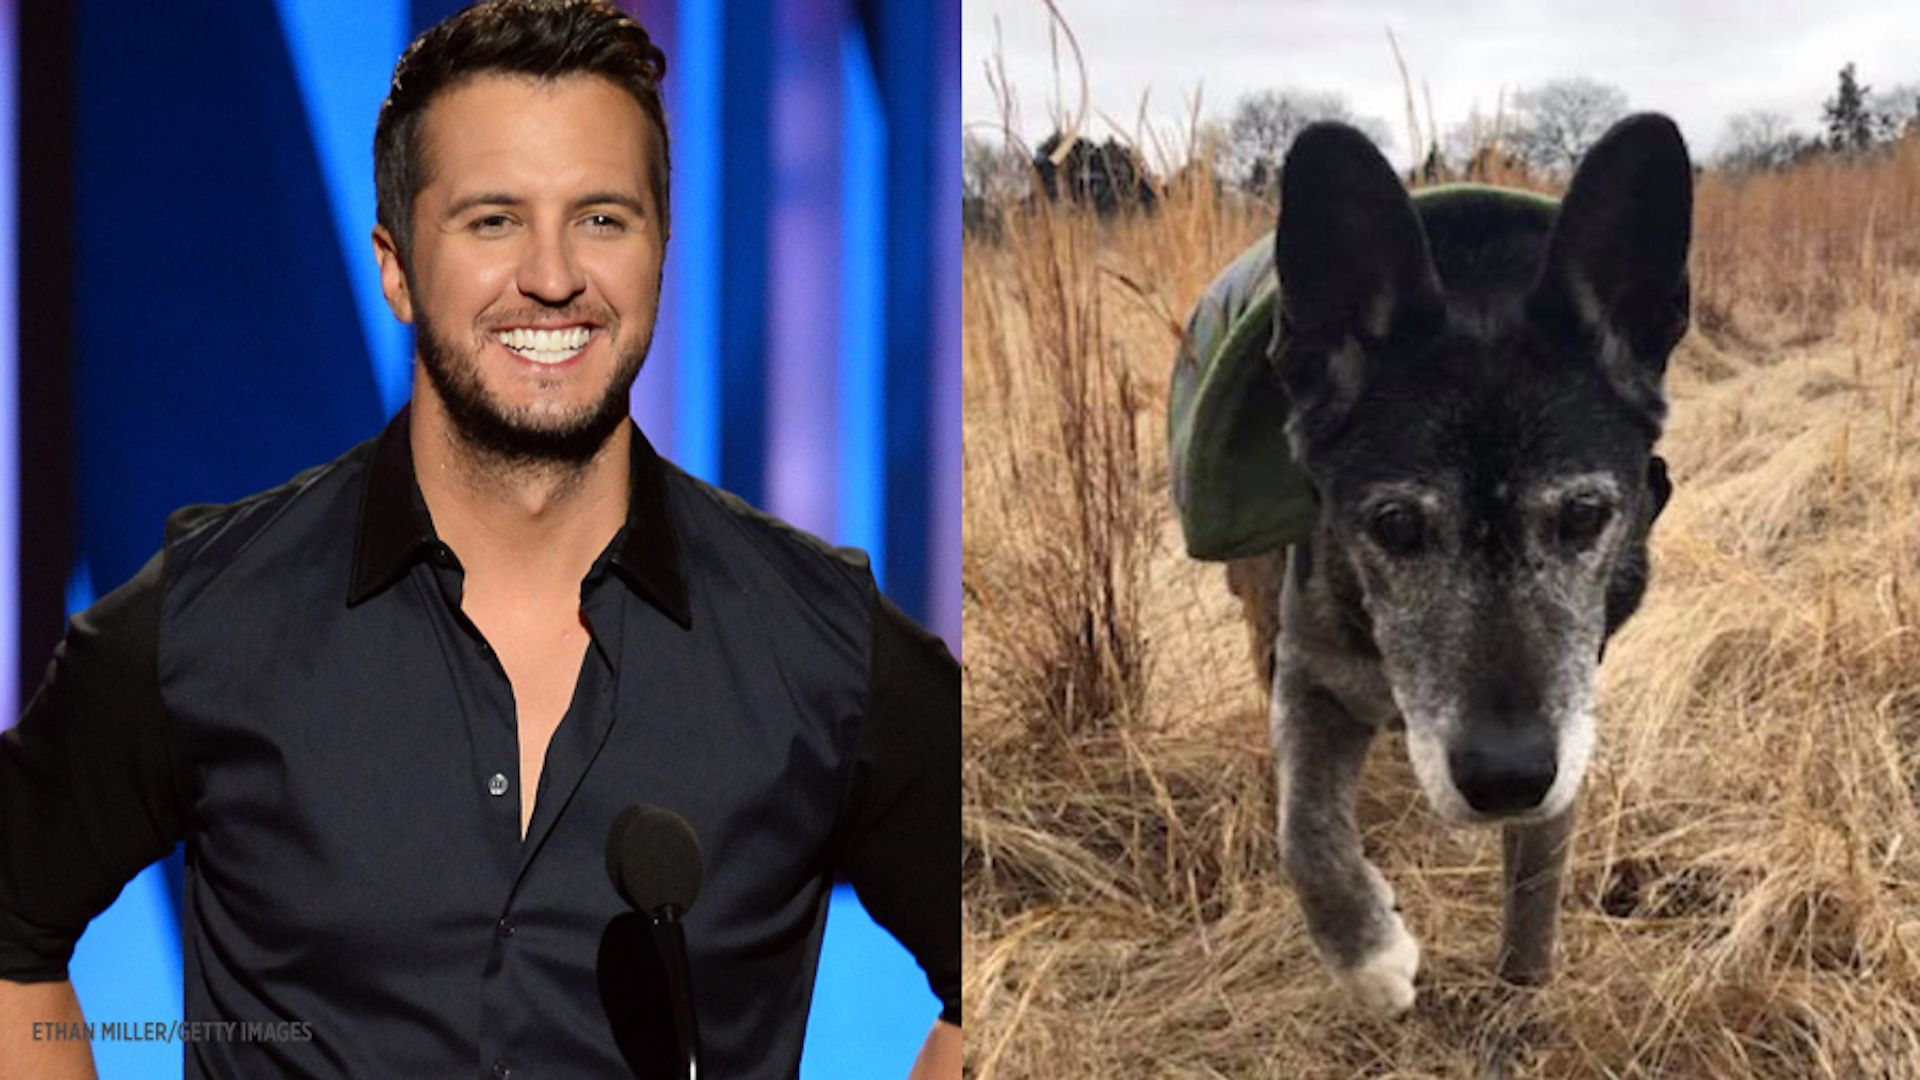 Luke Bryan's recently adopted 18-year-old shelter dog has died